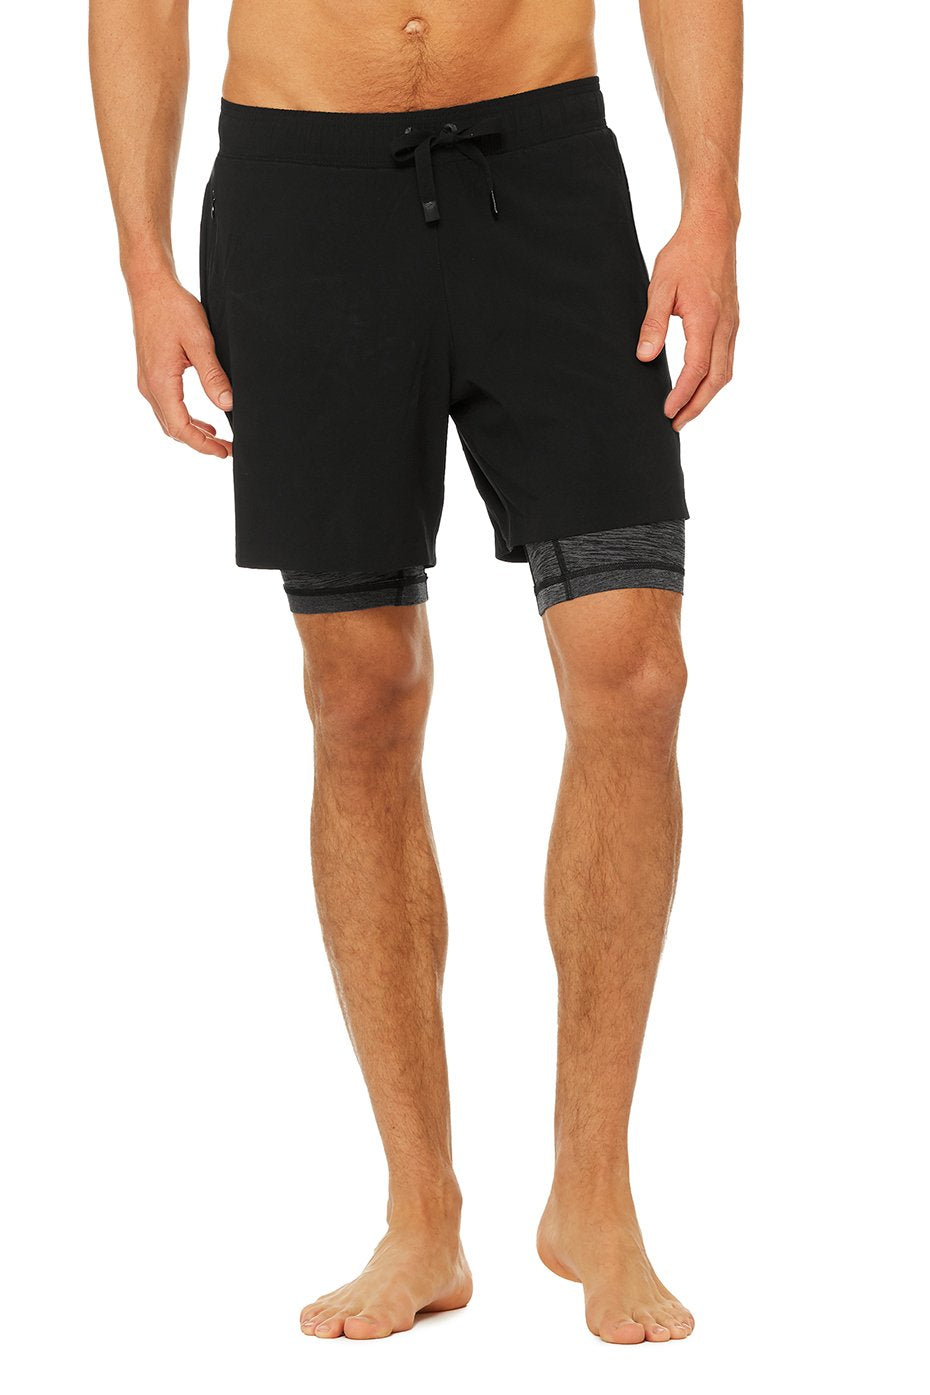 Unity 2 in 1 - Black Shorts